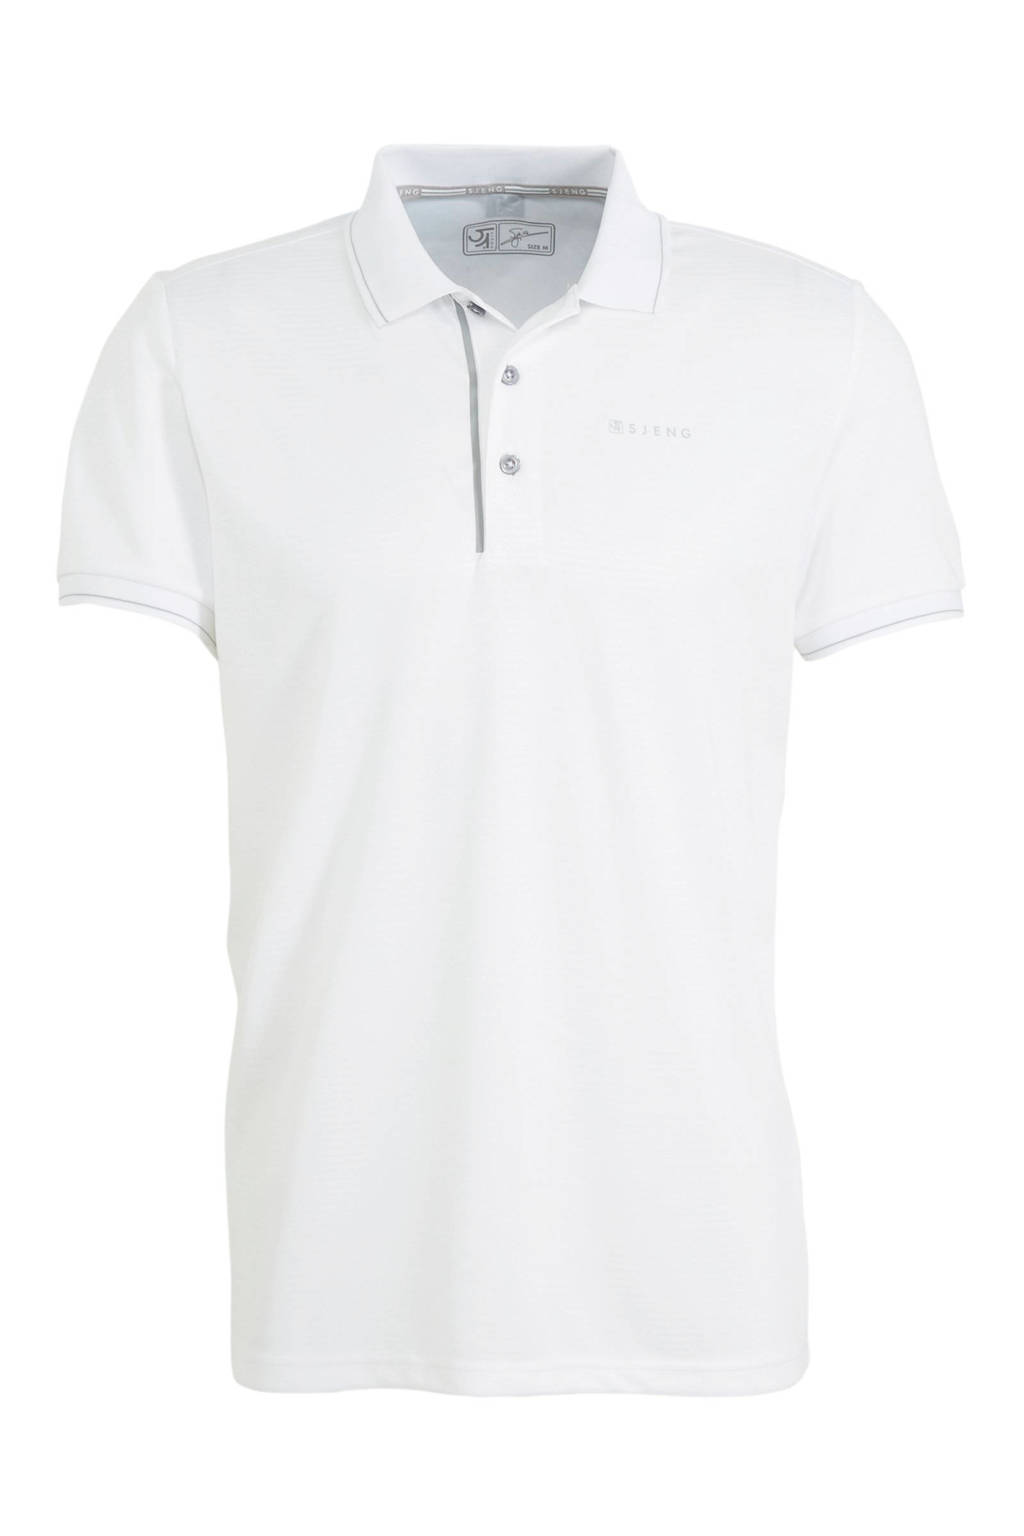 Sjeng Sports   polo Grand wit, Wit